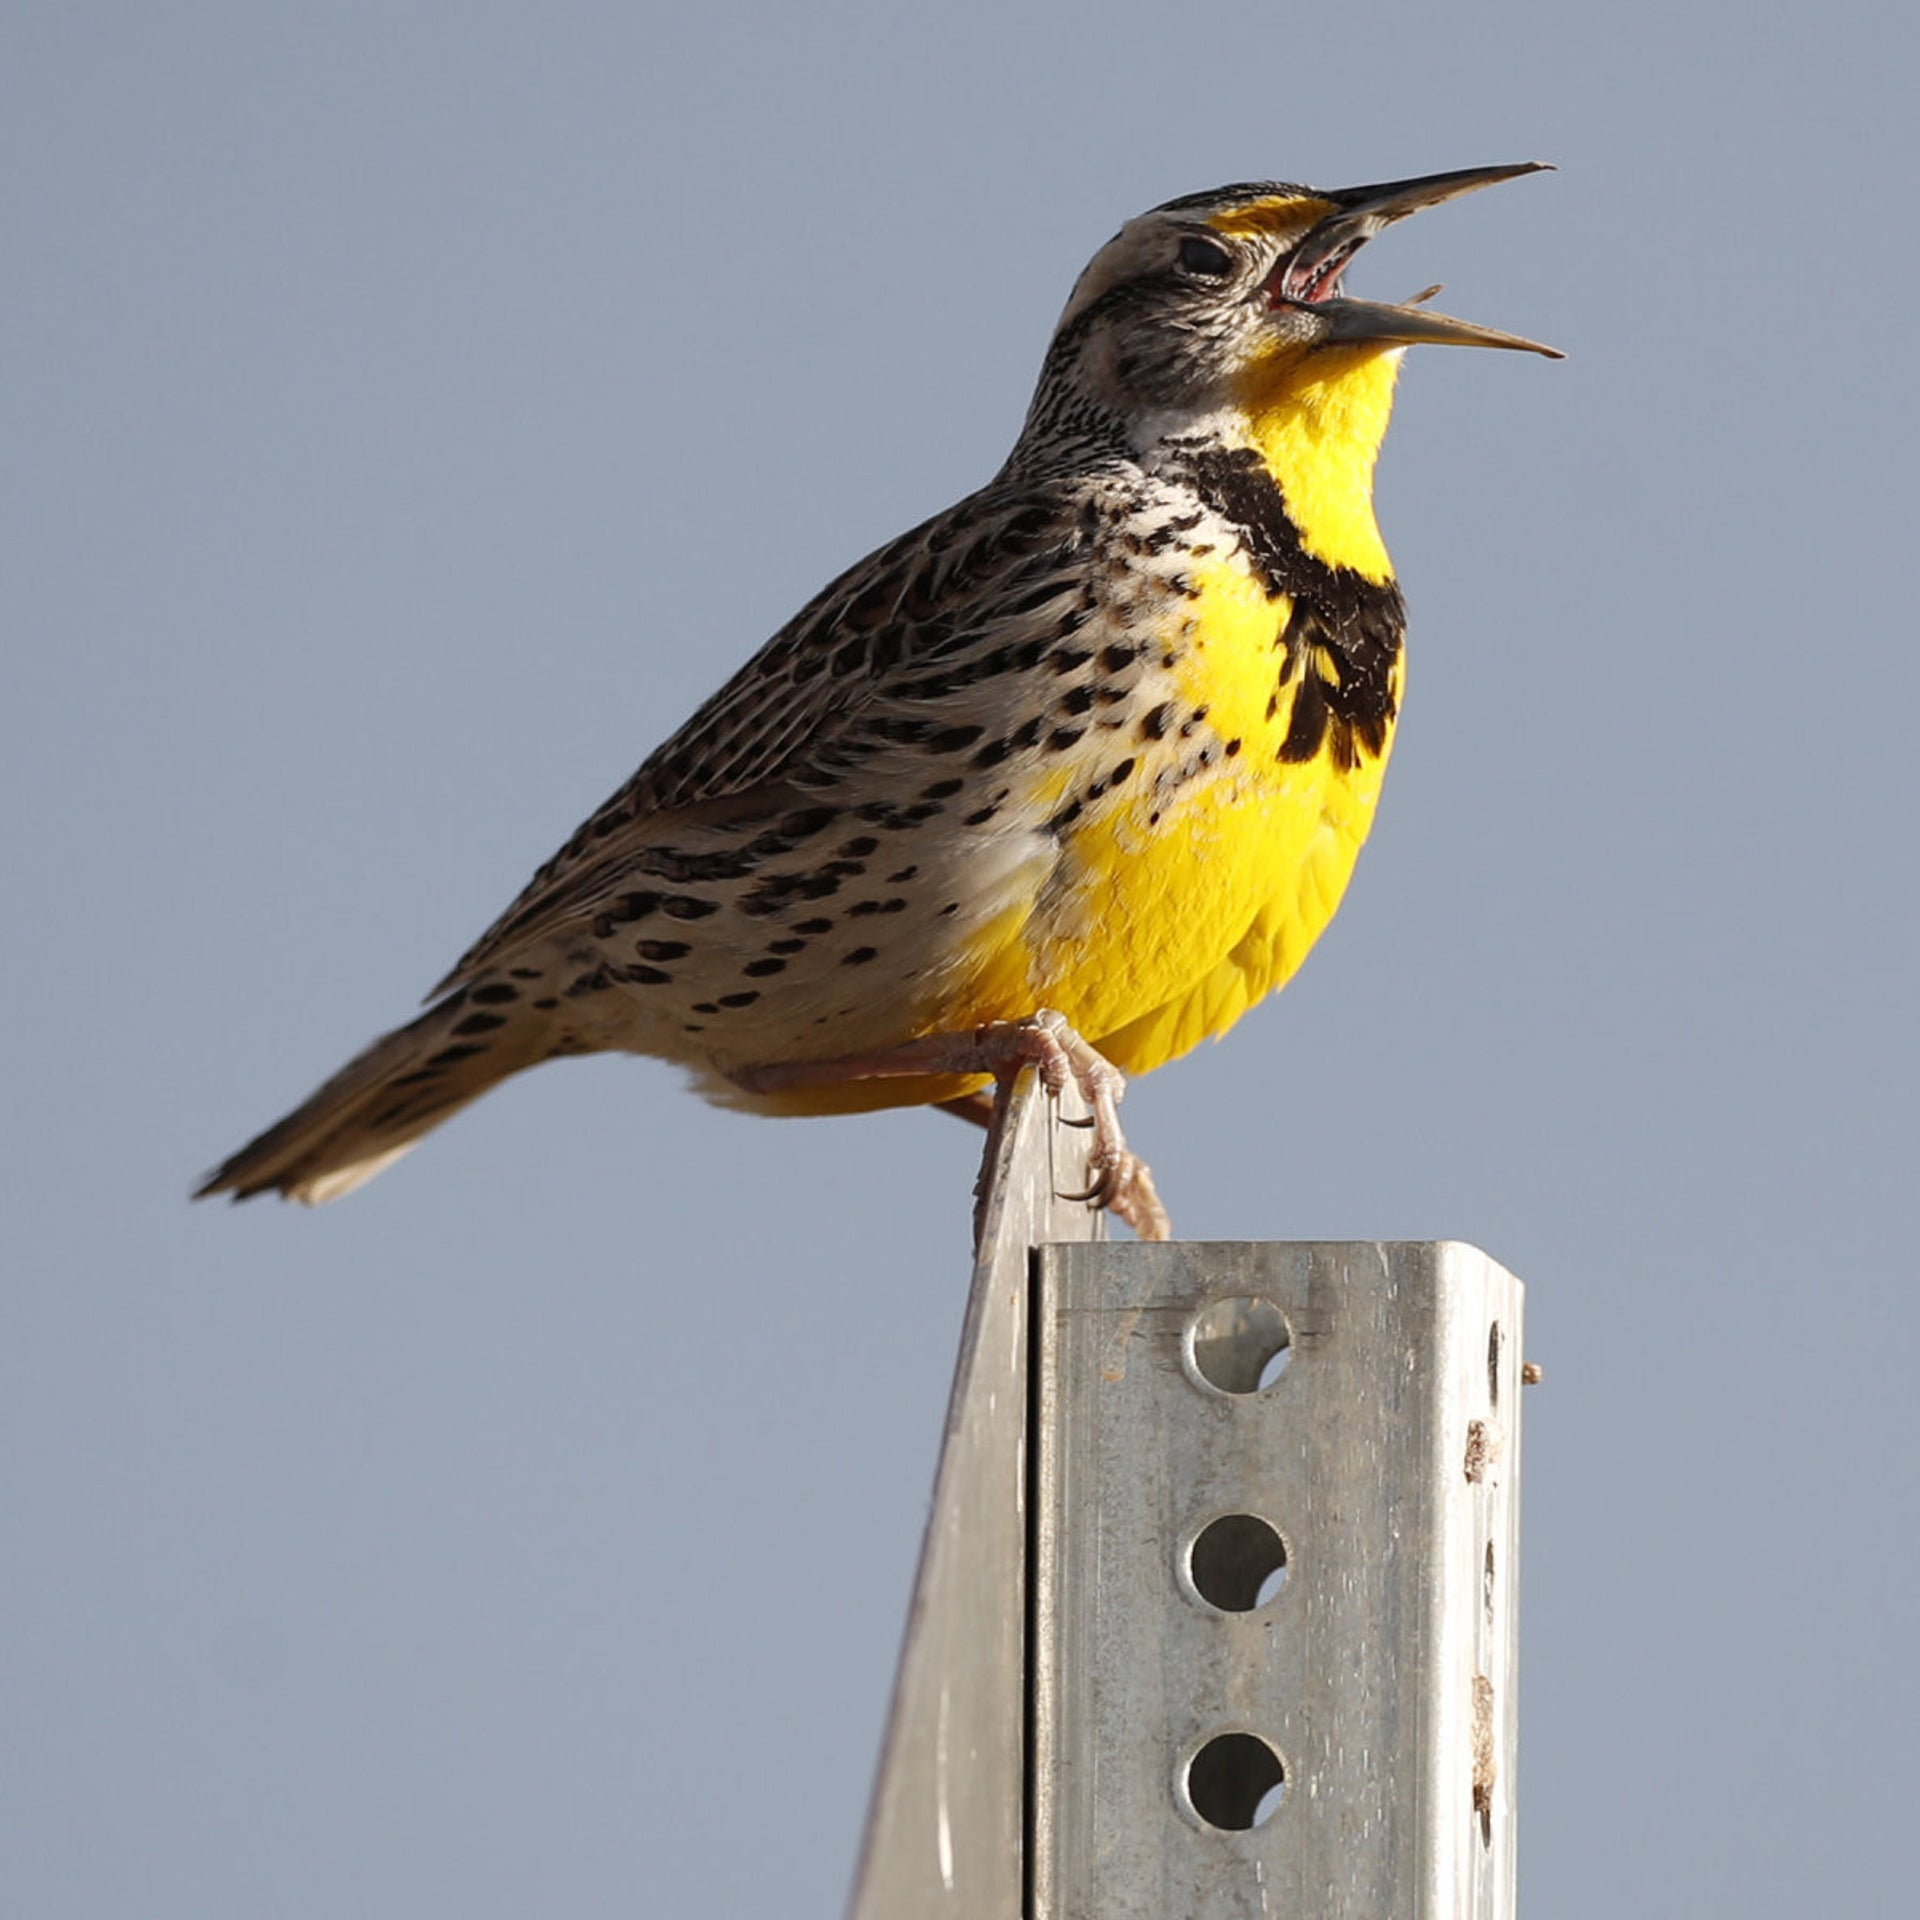 Migratory birds are shrinking